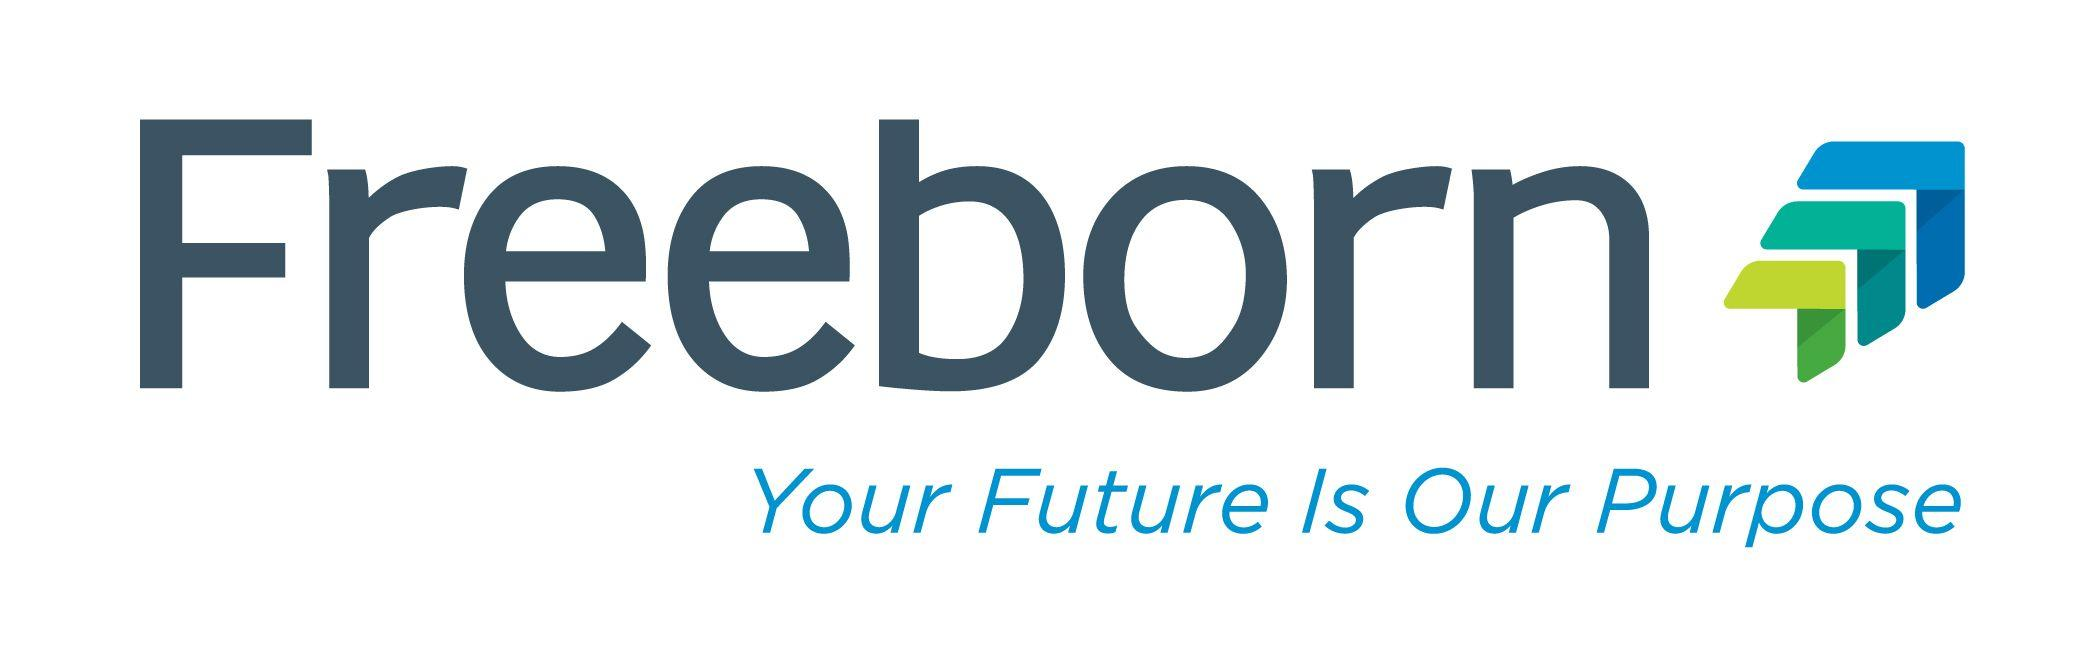 Freeborn Peters Logo - a Truffle Level Sponsor for 2020 Sweets for Sight